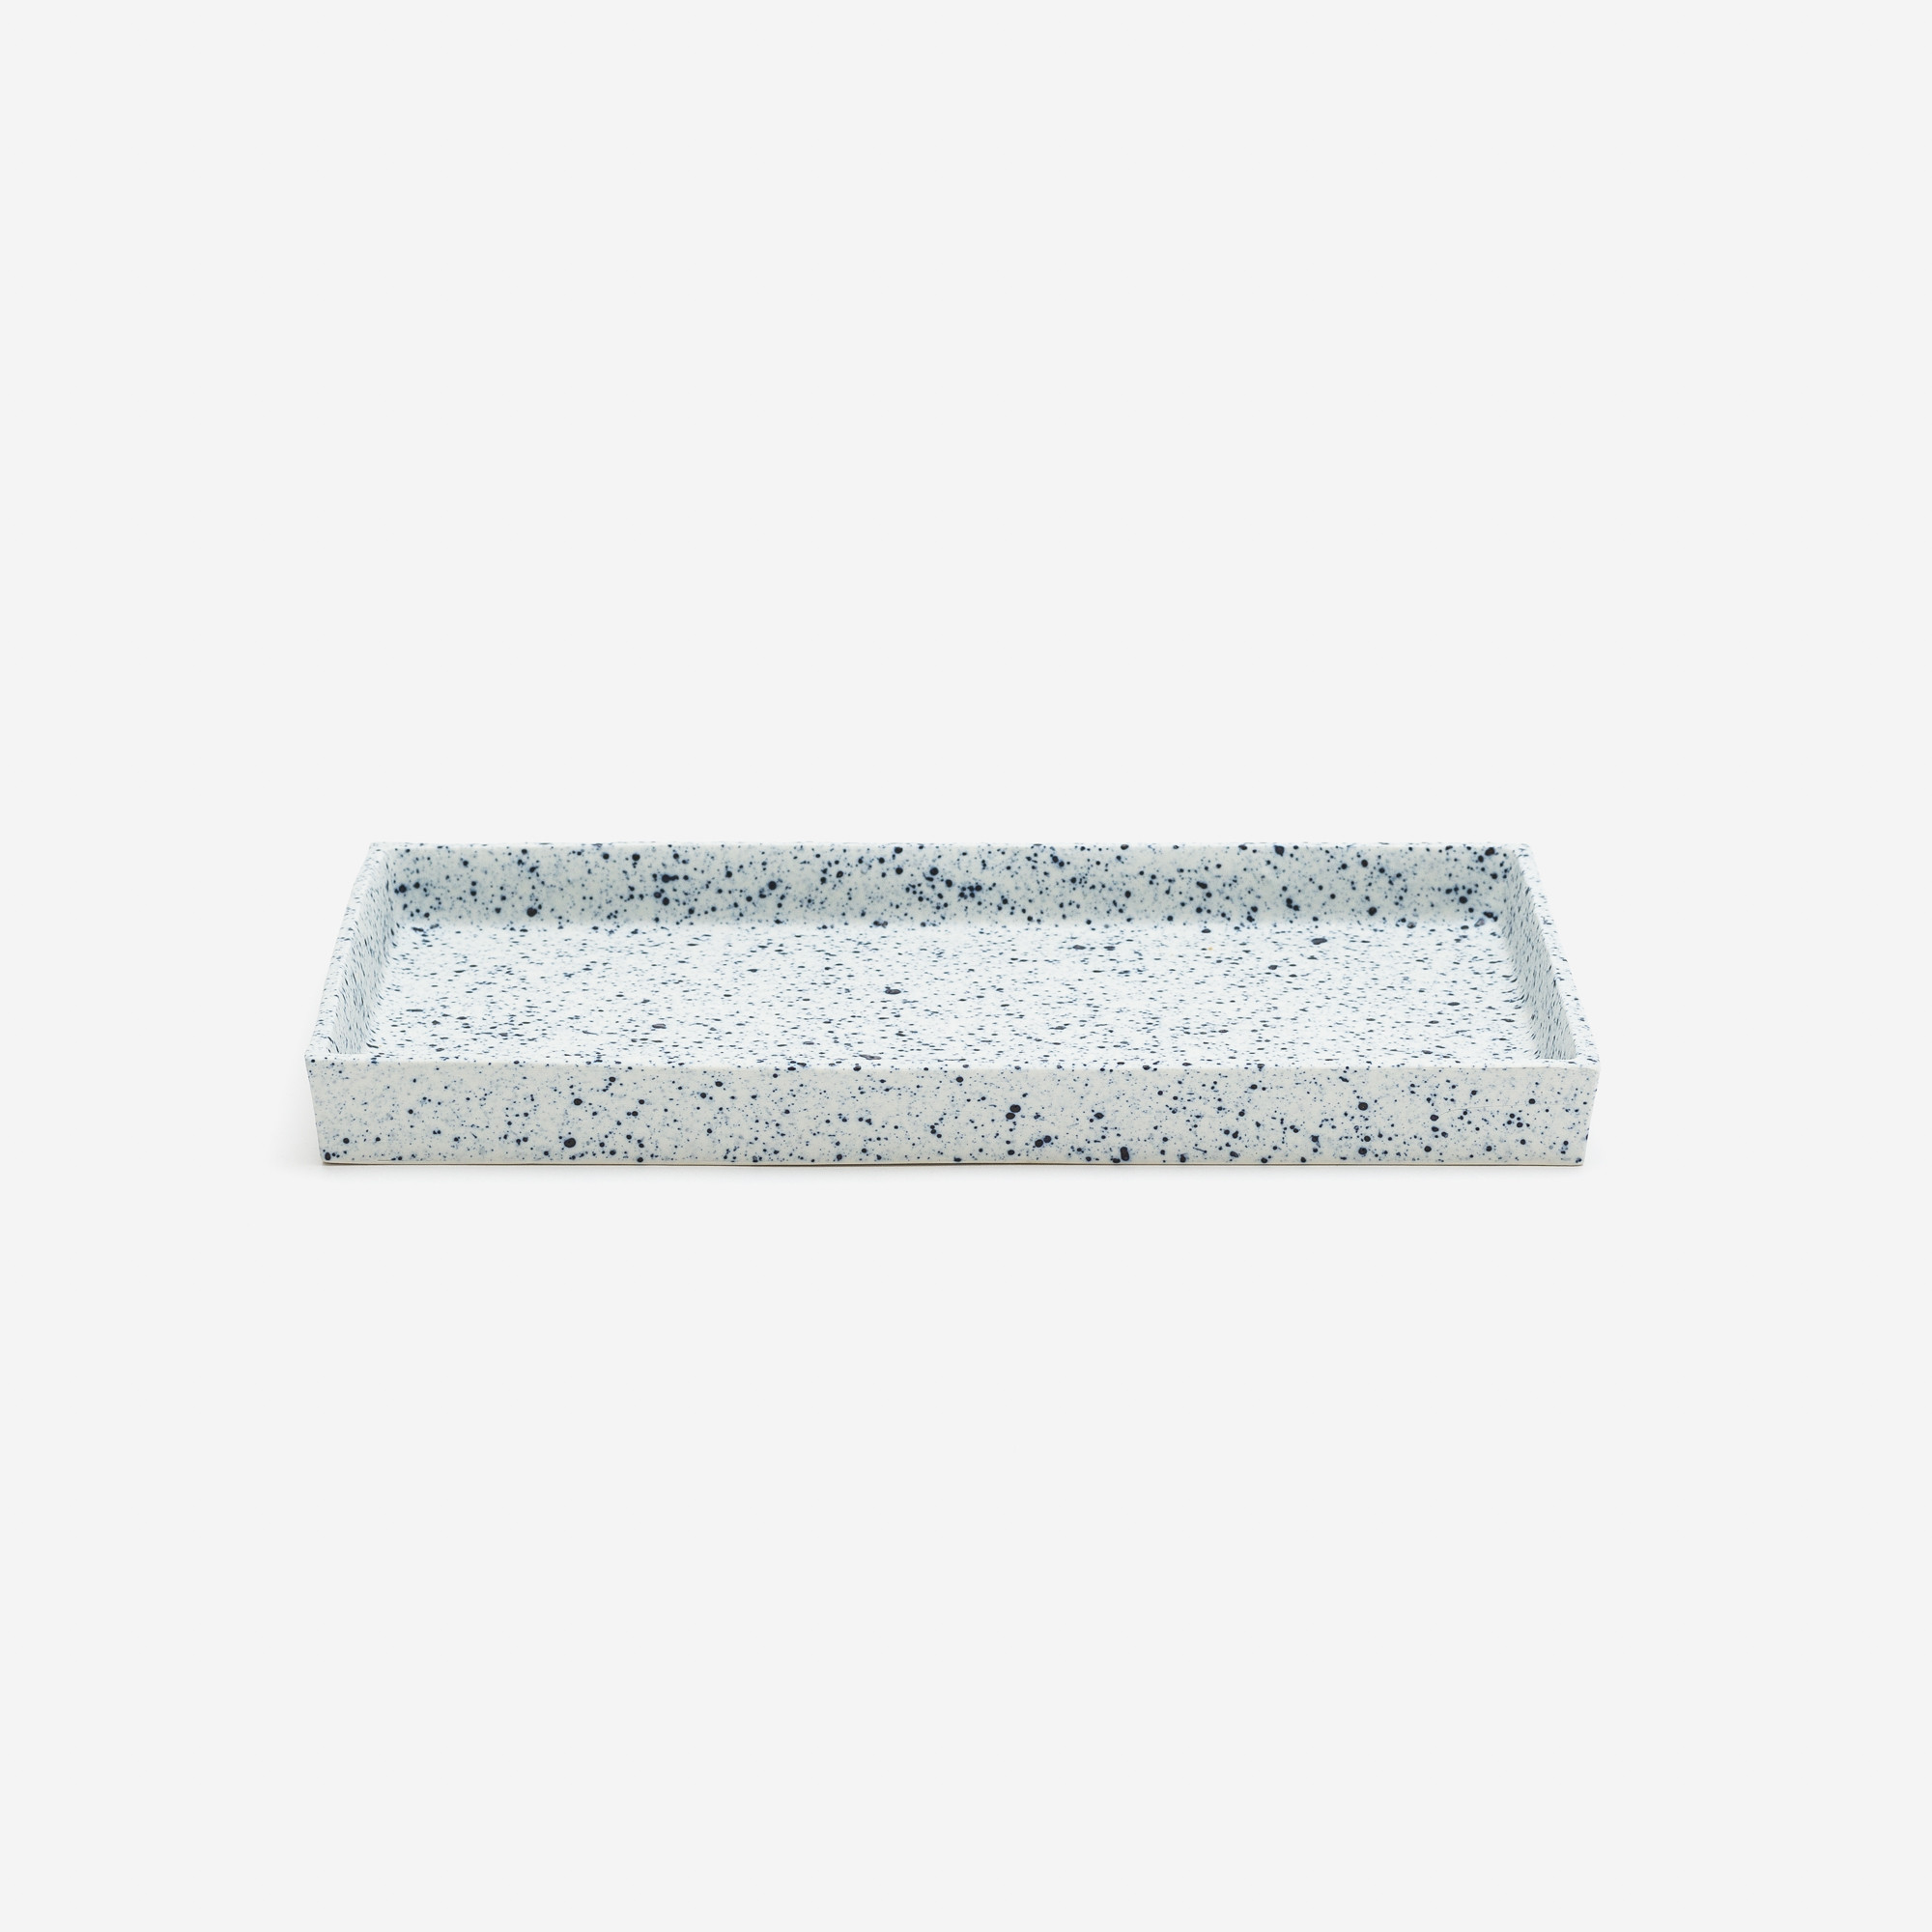 De Intuitiefabriek | Modern ceramic tray with sprinkles